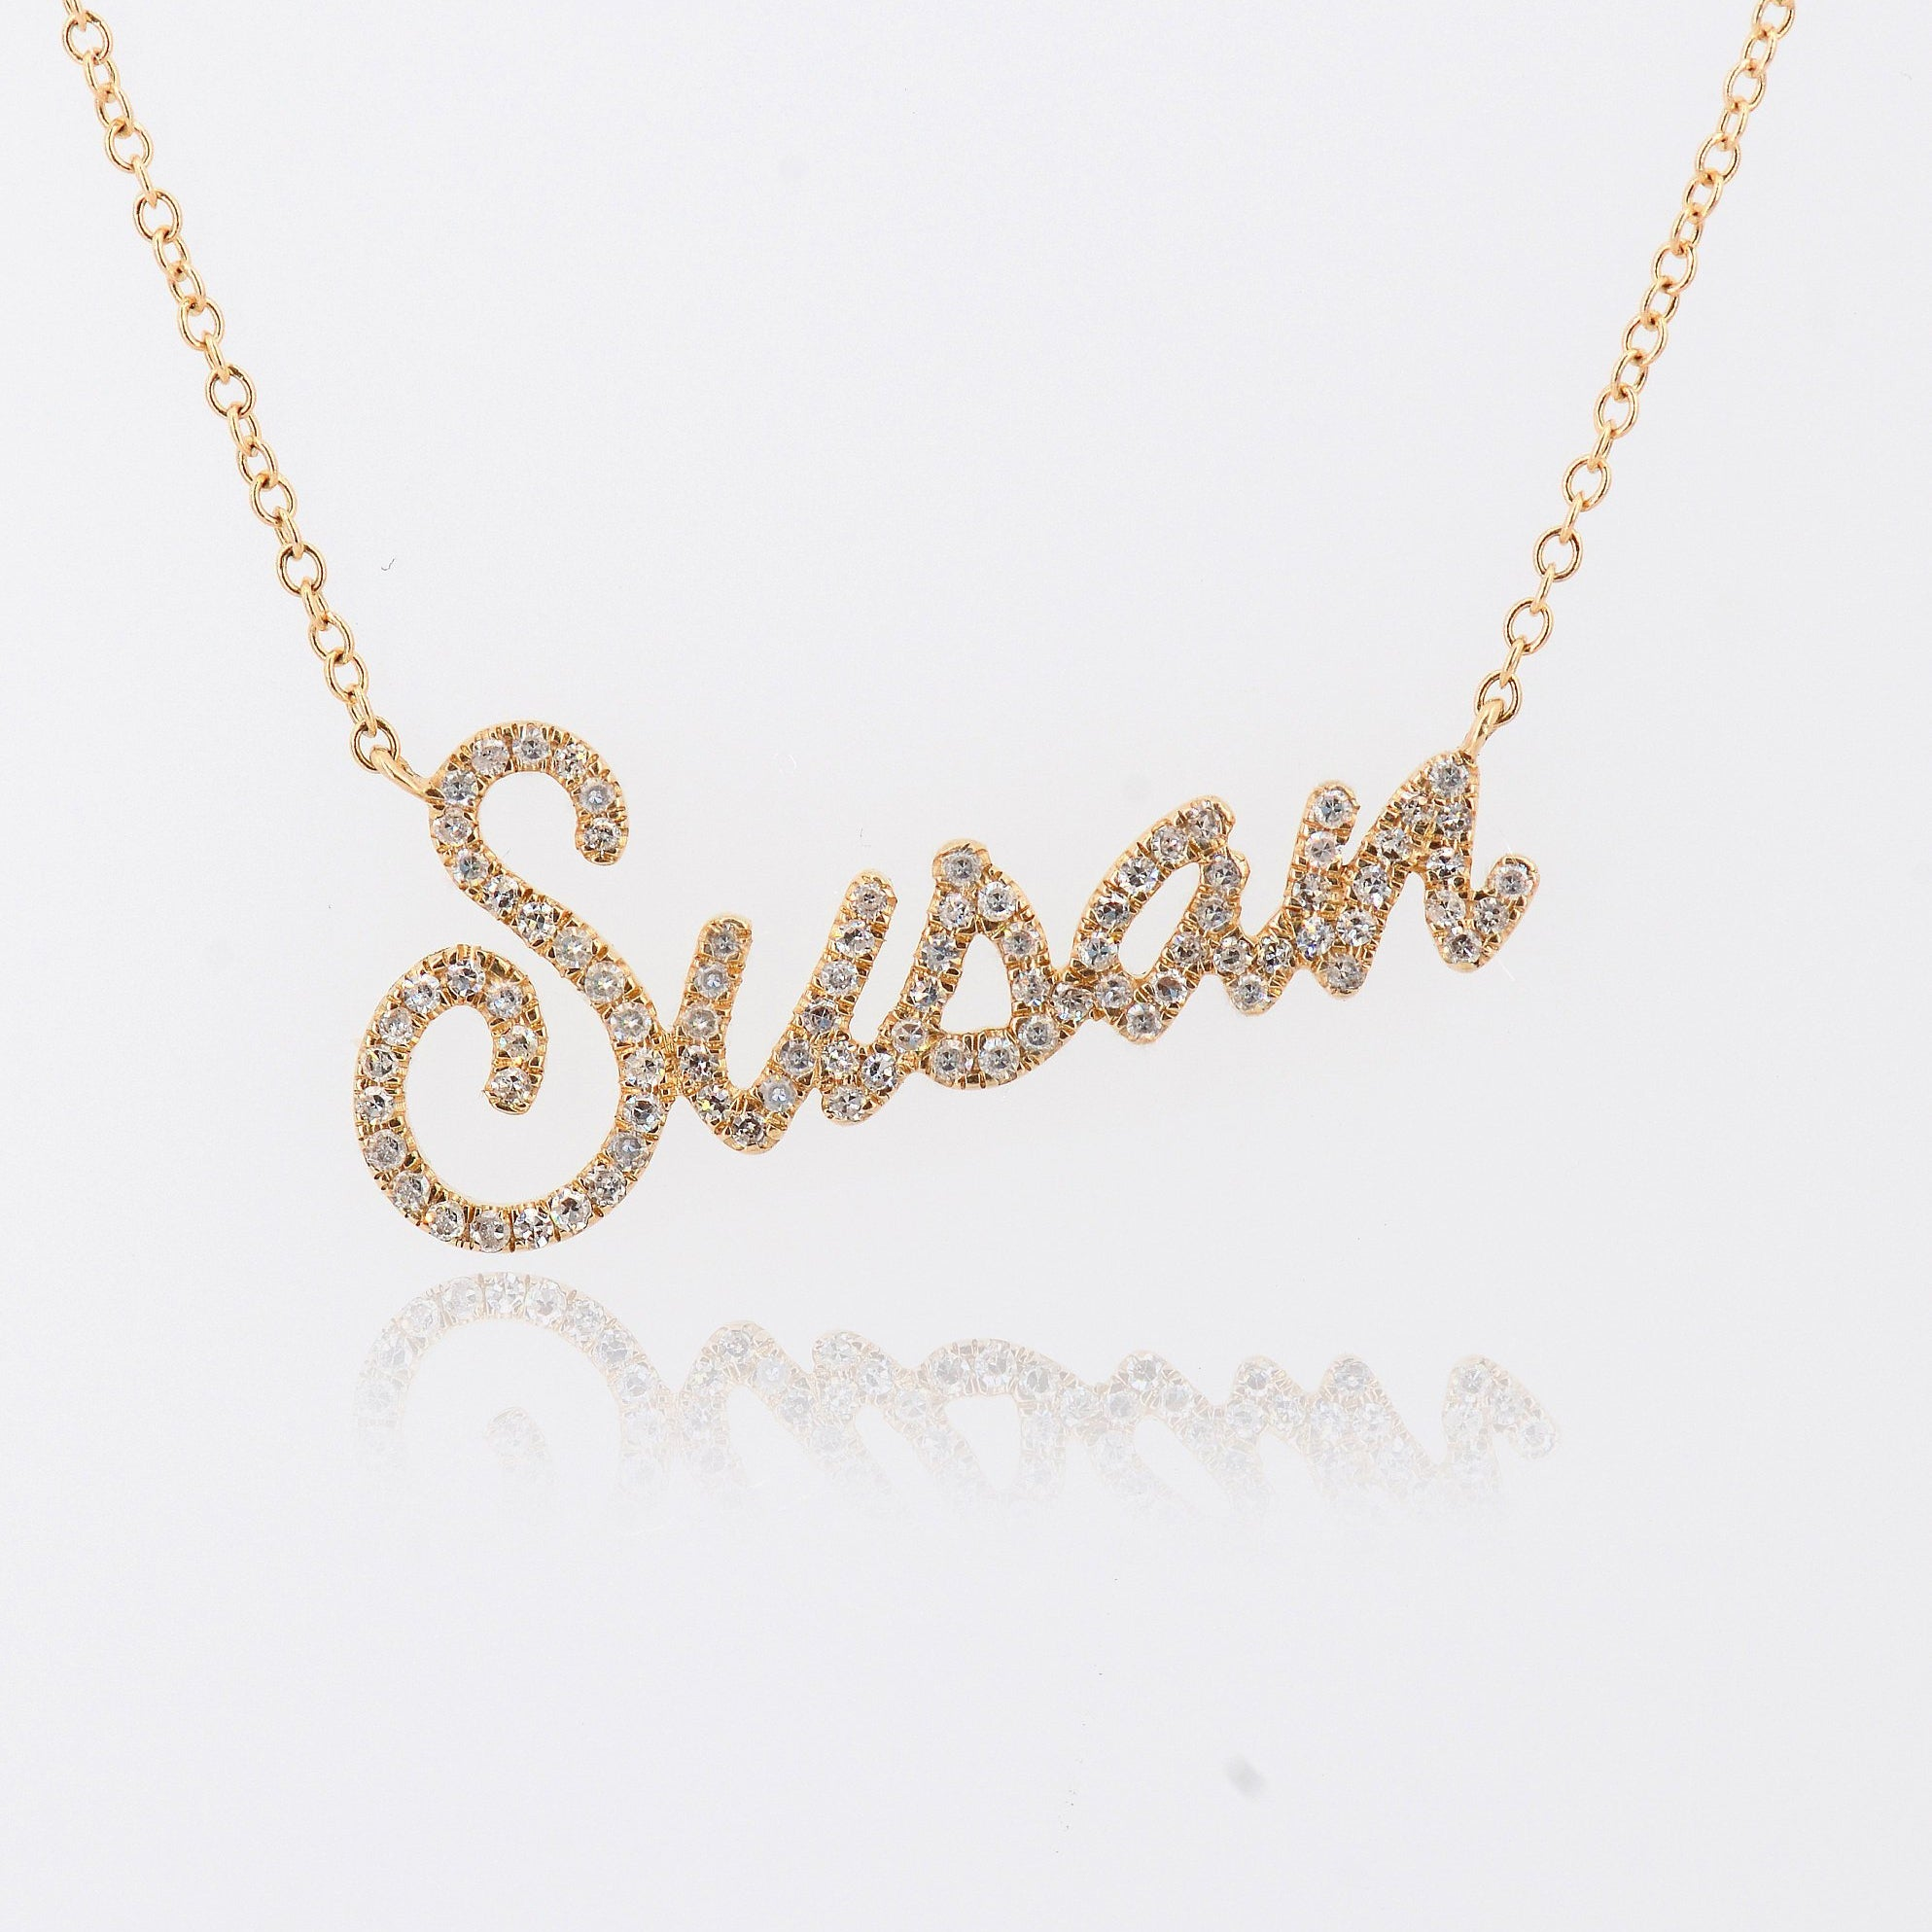 Diamond Personalized Name Necklace, Customized Diamond Initial Letter Chain